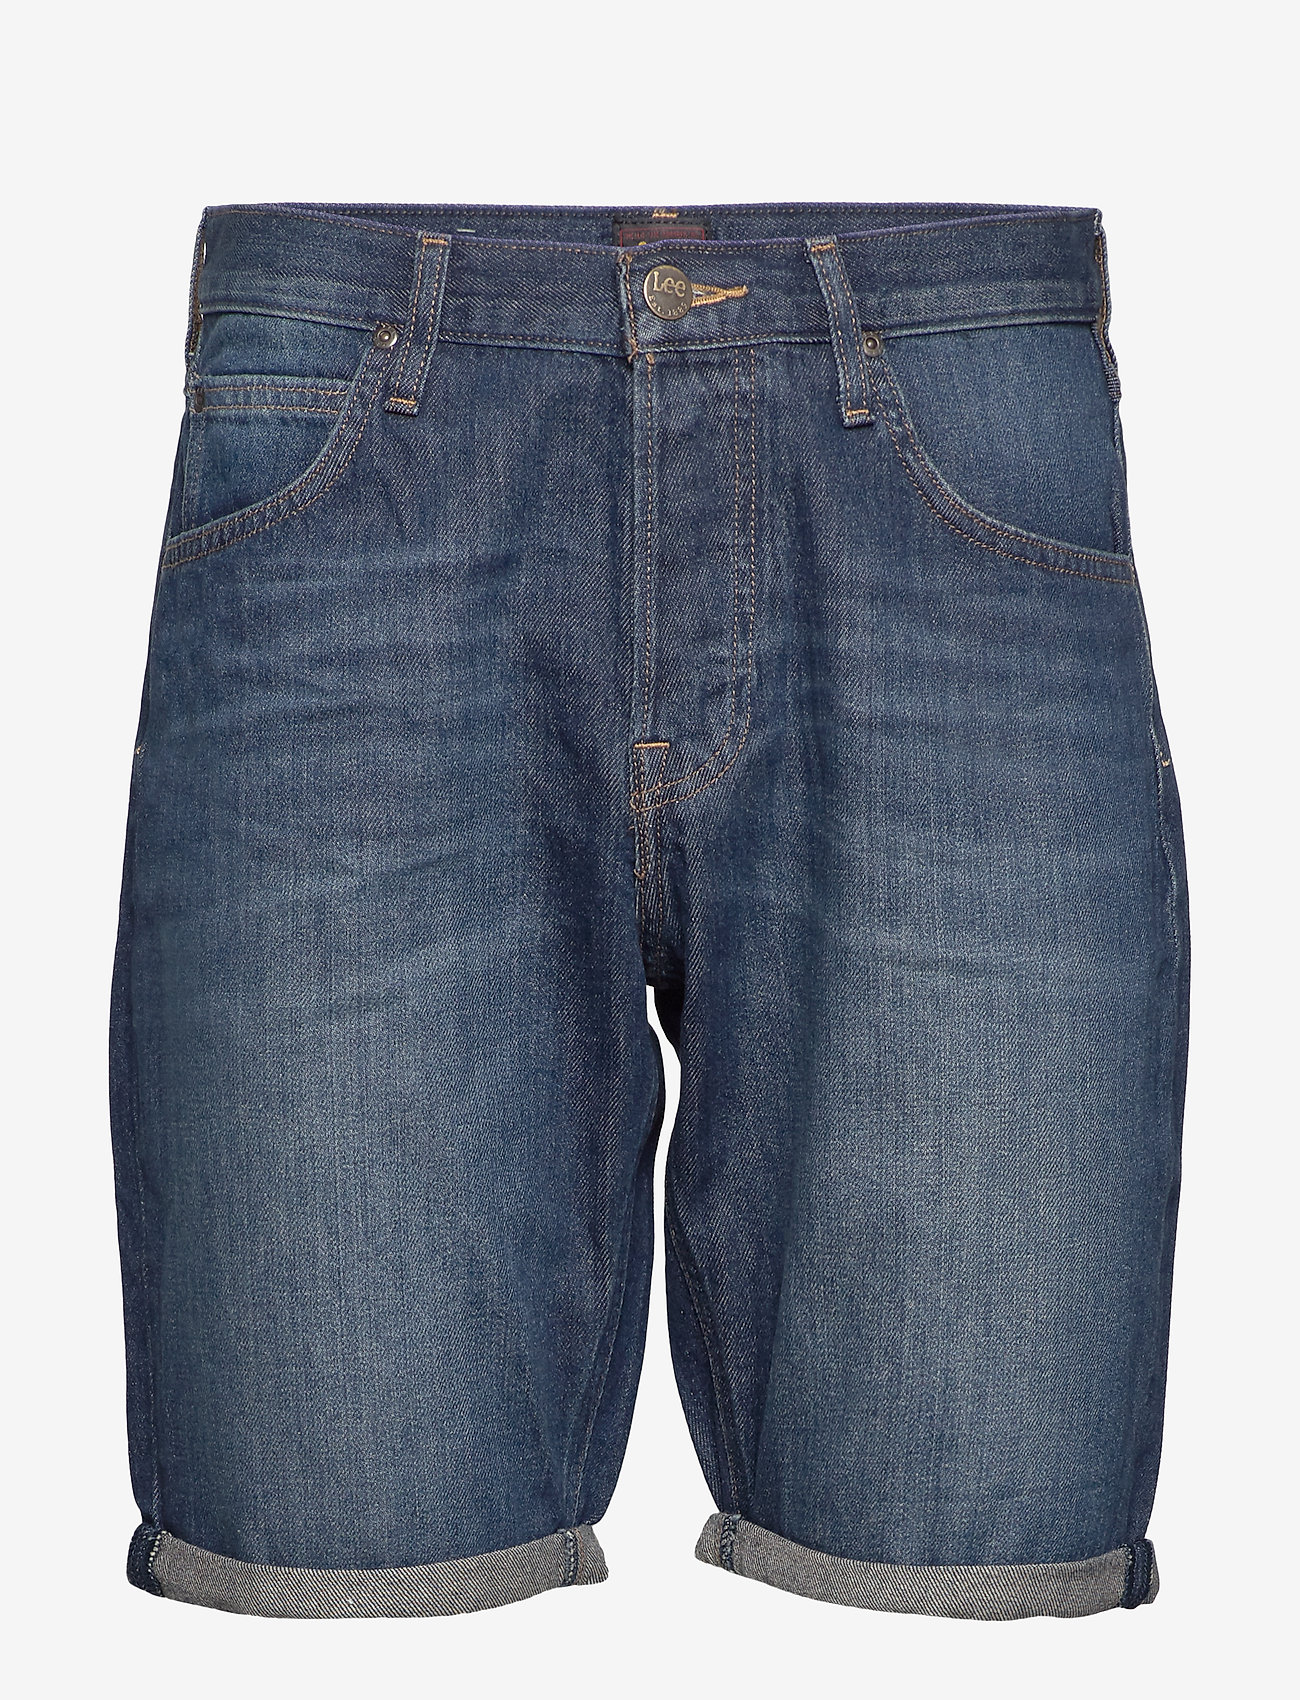 Lee Jeans - 5 POCKET SHORT - denim shorts - dk salvador - 0